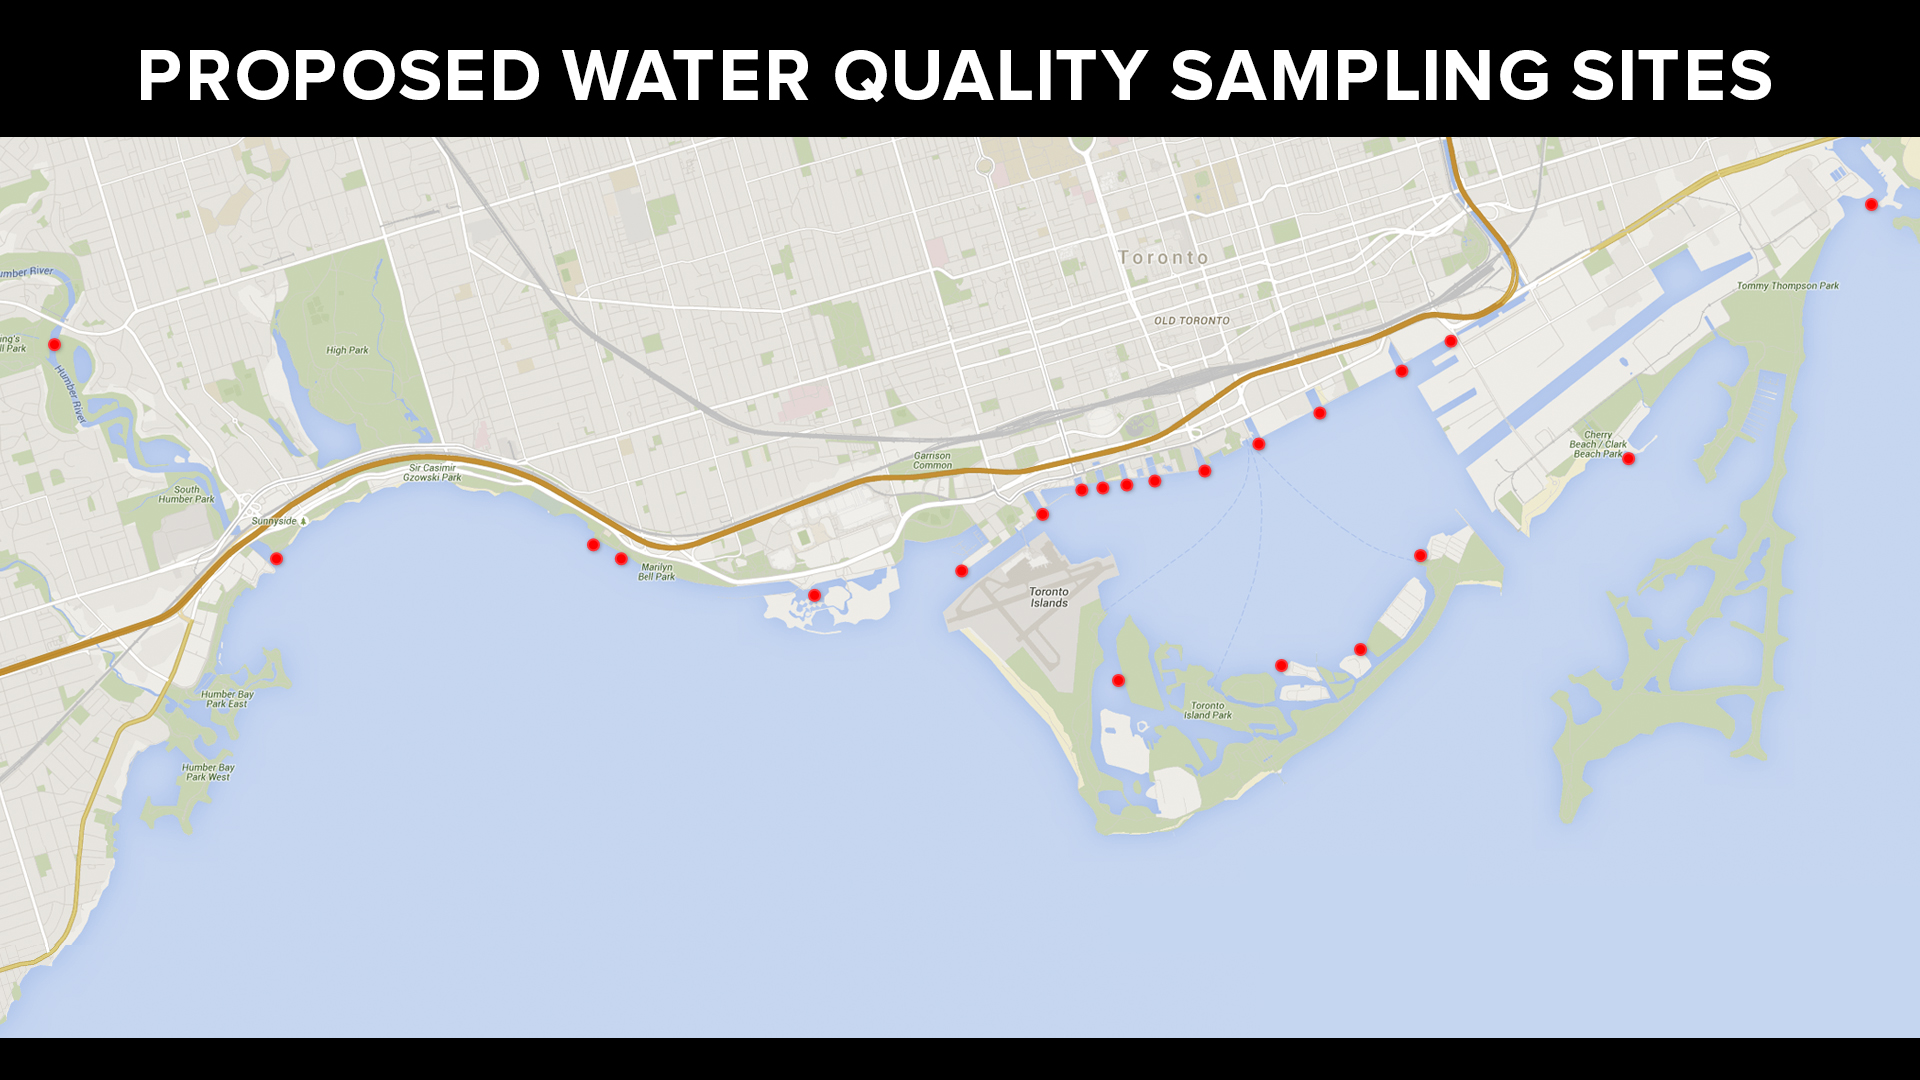 The areas Waterkeeper aims to collect water quality samples from with the  Angus Bruce . (Image via Lake Ontario Waterkeeper)